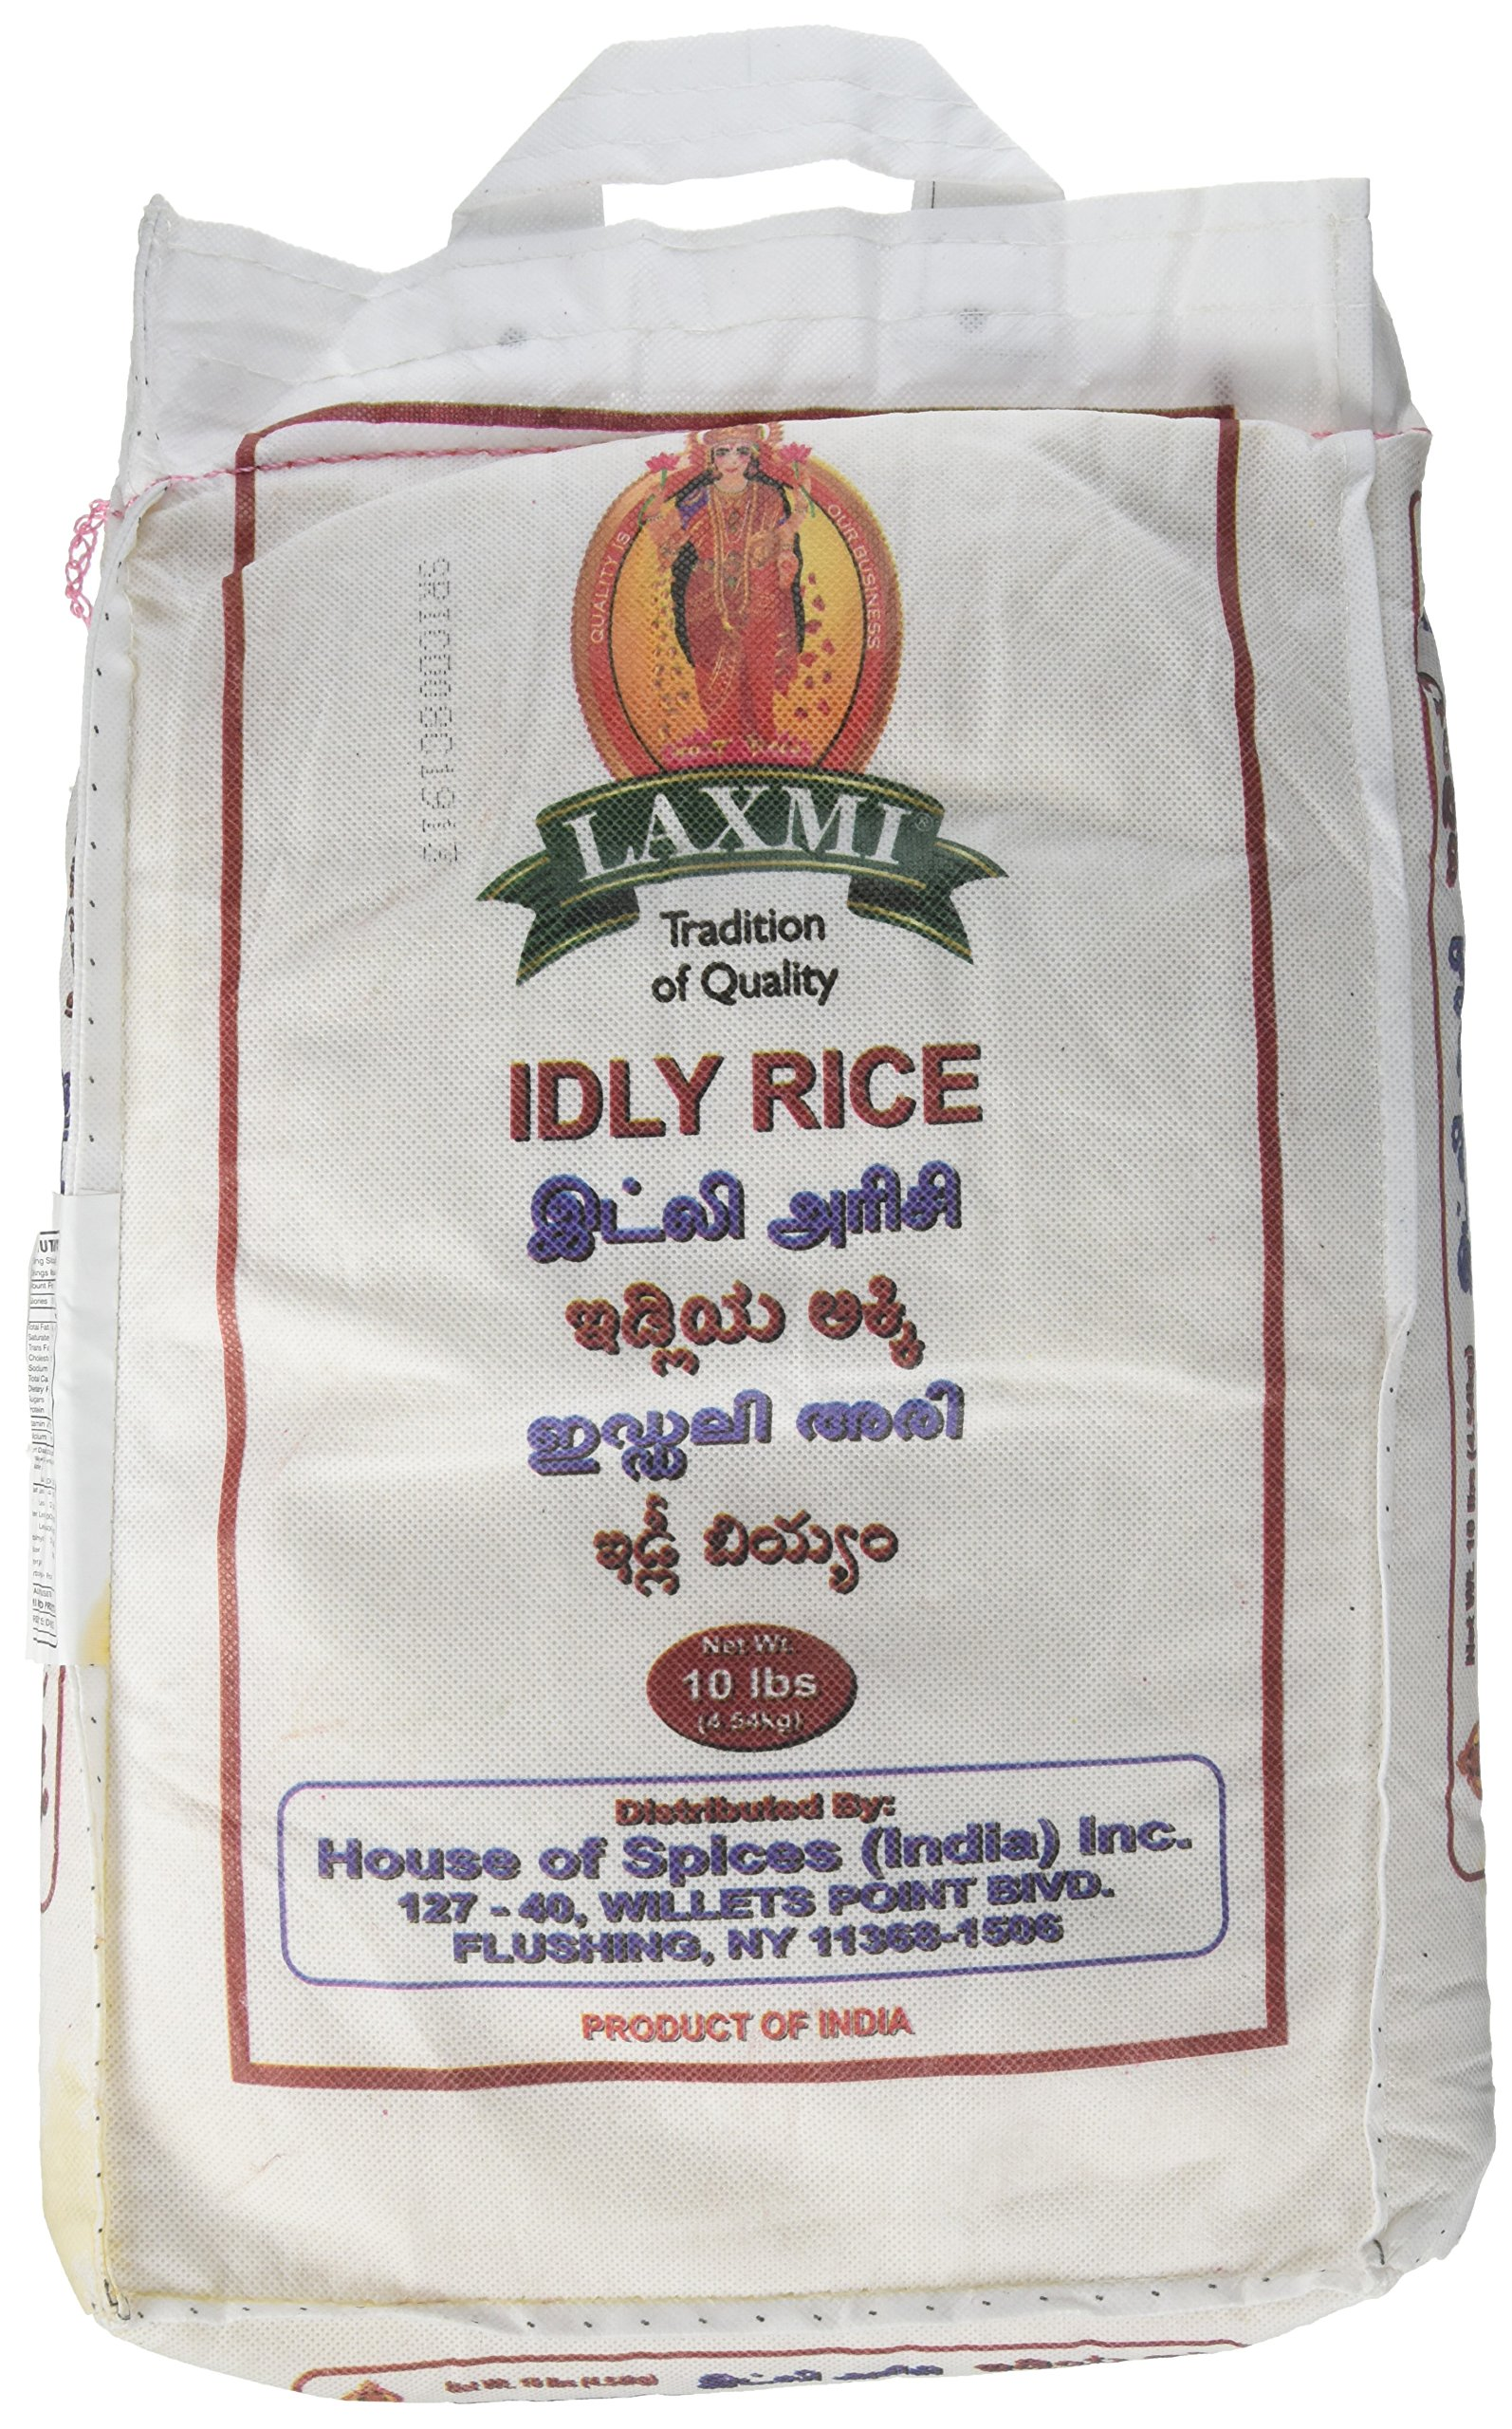 Laxmi Natural Idli Rice - House of Spices, 10 Pounds